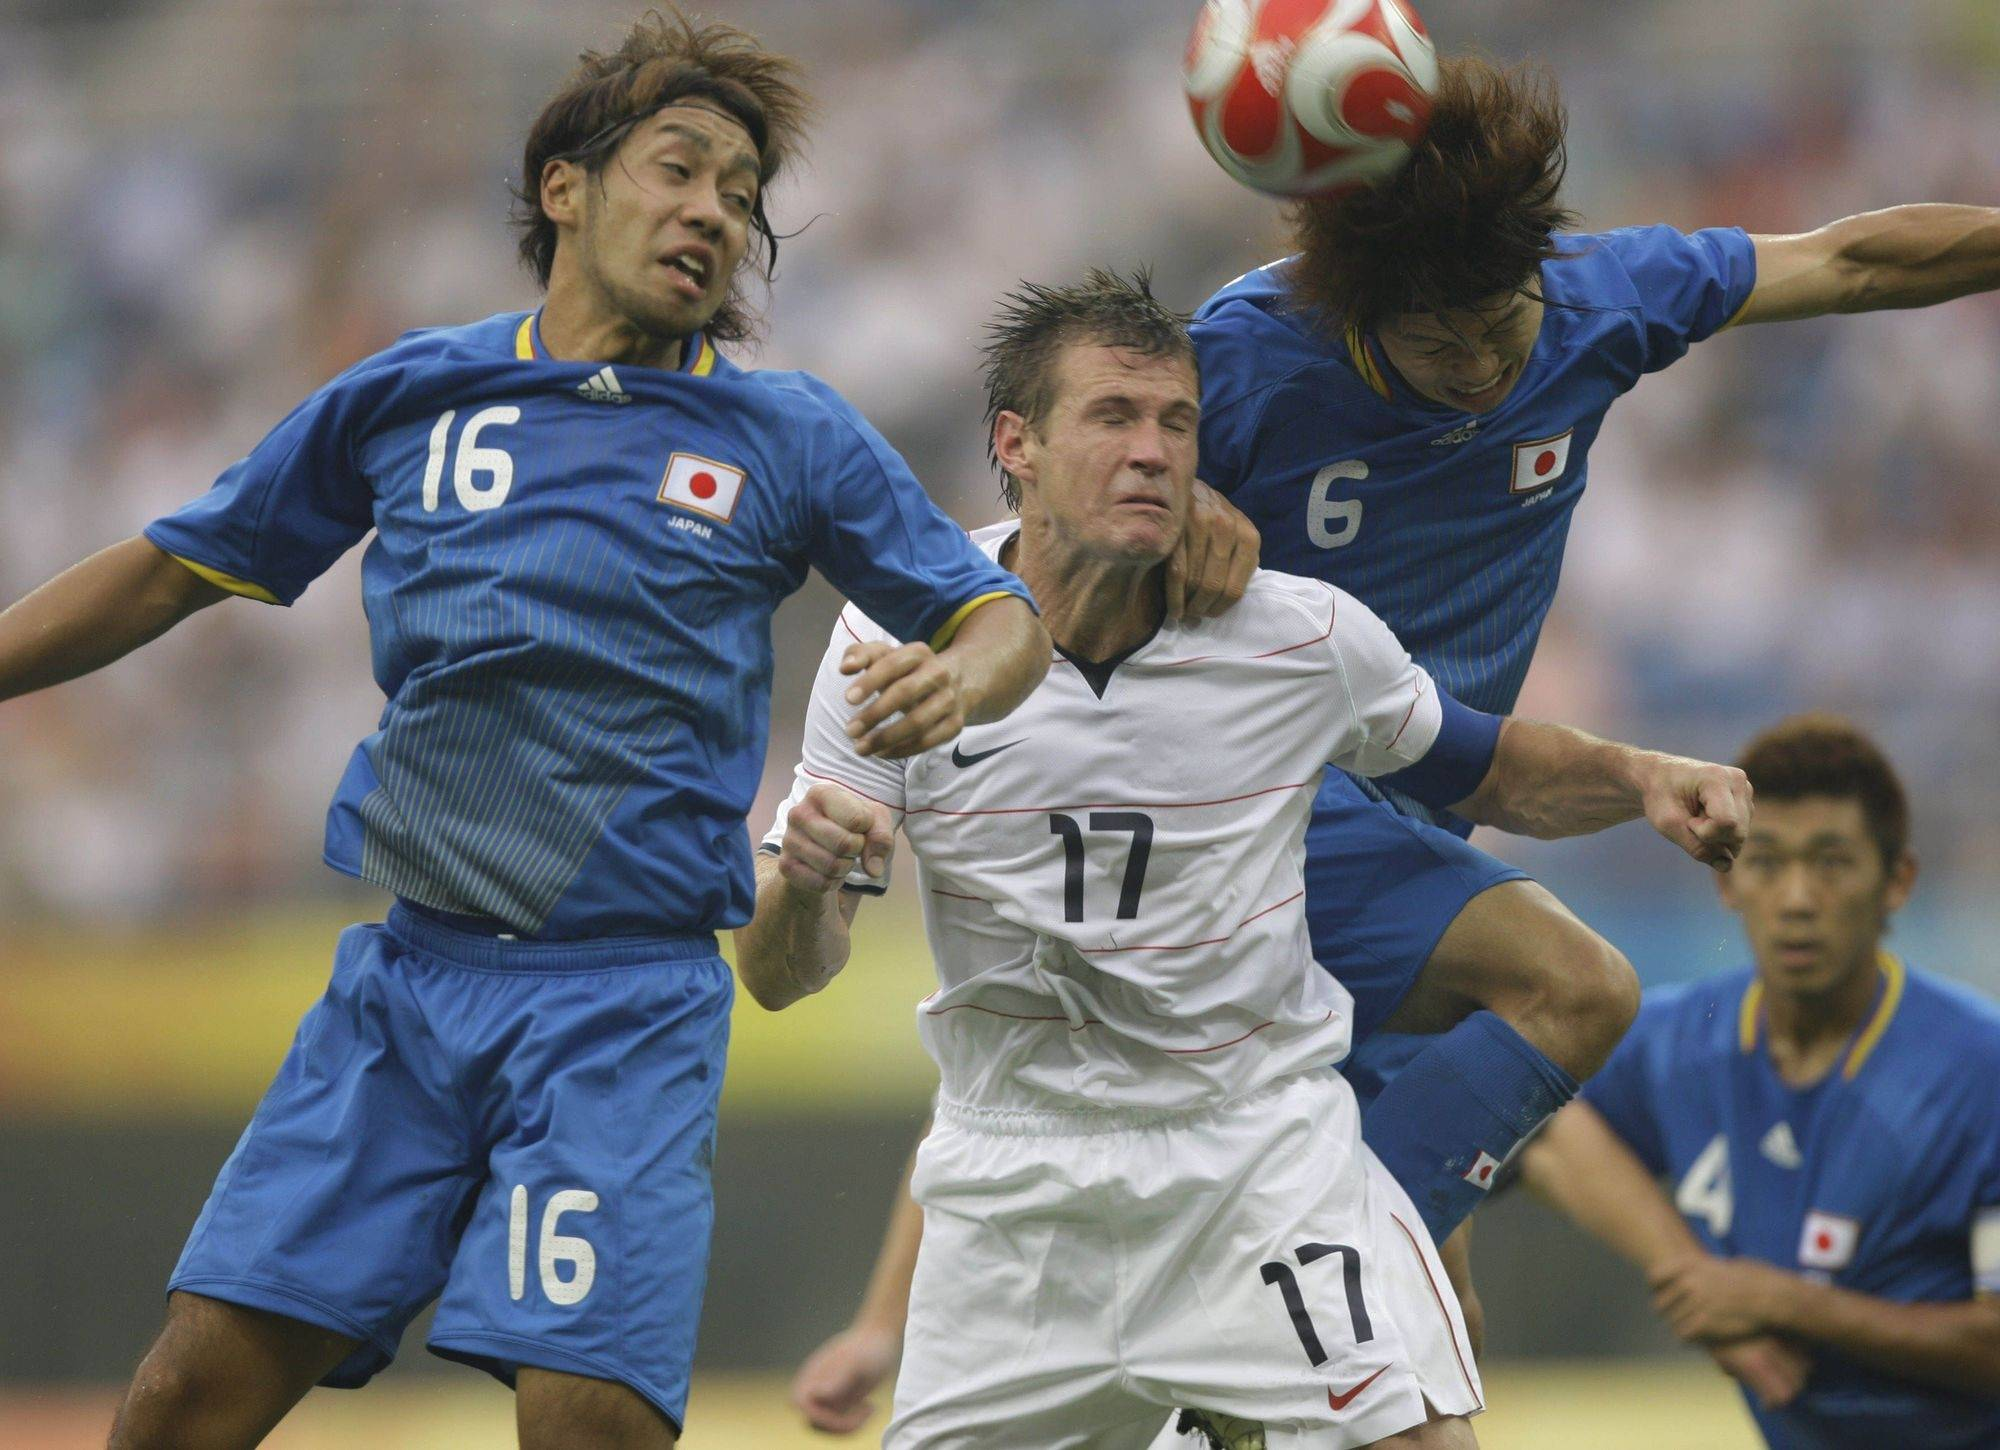 Japan's Takuya Honda (16) and Masato Morishige (6) challenge for the ball against United States' Brian McBride (17) during a Group B Men's Soccer match at the Beijing 2008 Olympics in Tianjin, China Thursday, Aug. 7, 2008.